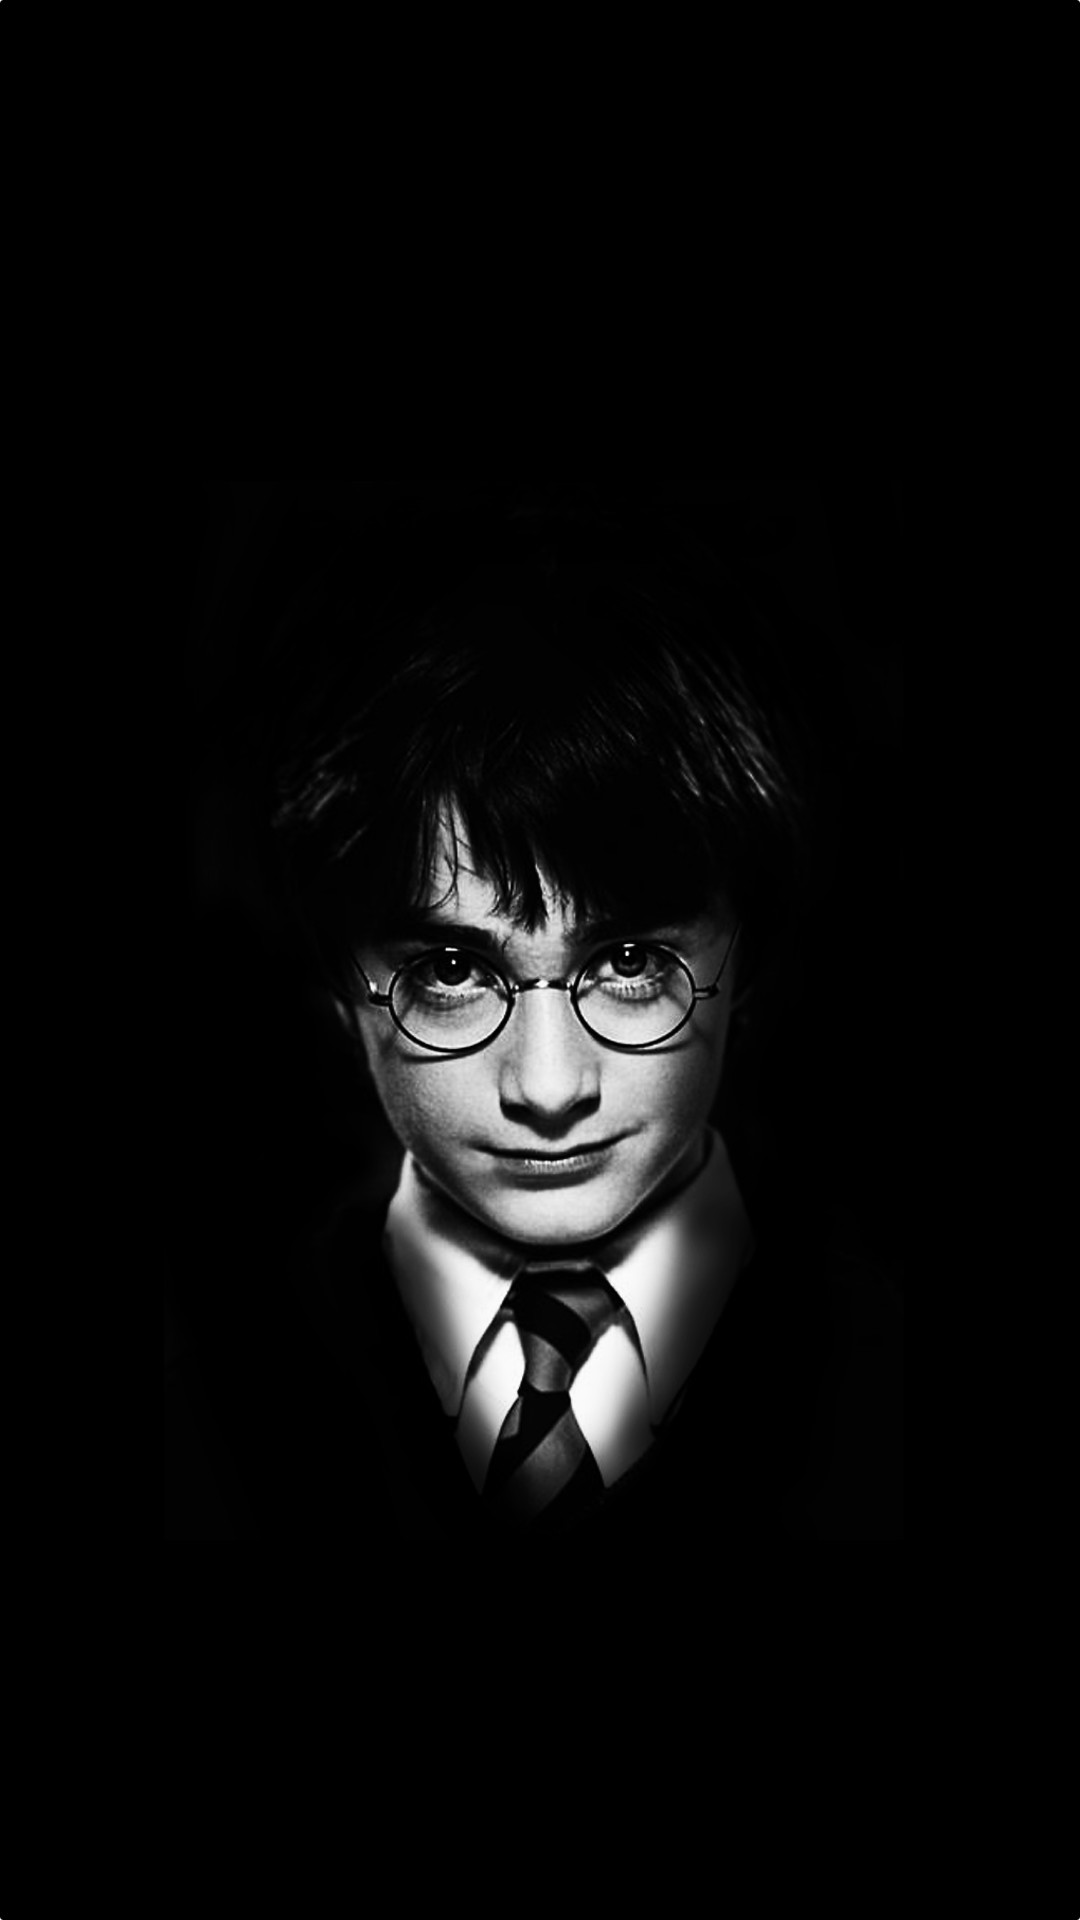 Save and share these Harry Potter iPhone wallpapers and spread magic in  your life! They have good quality which will not let your wallpapers look  blurred.